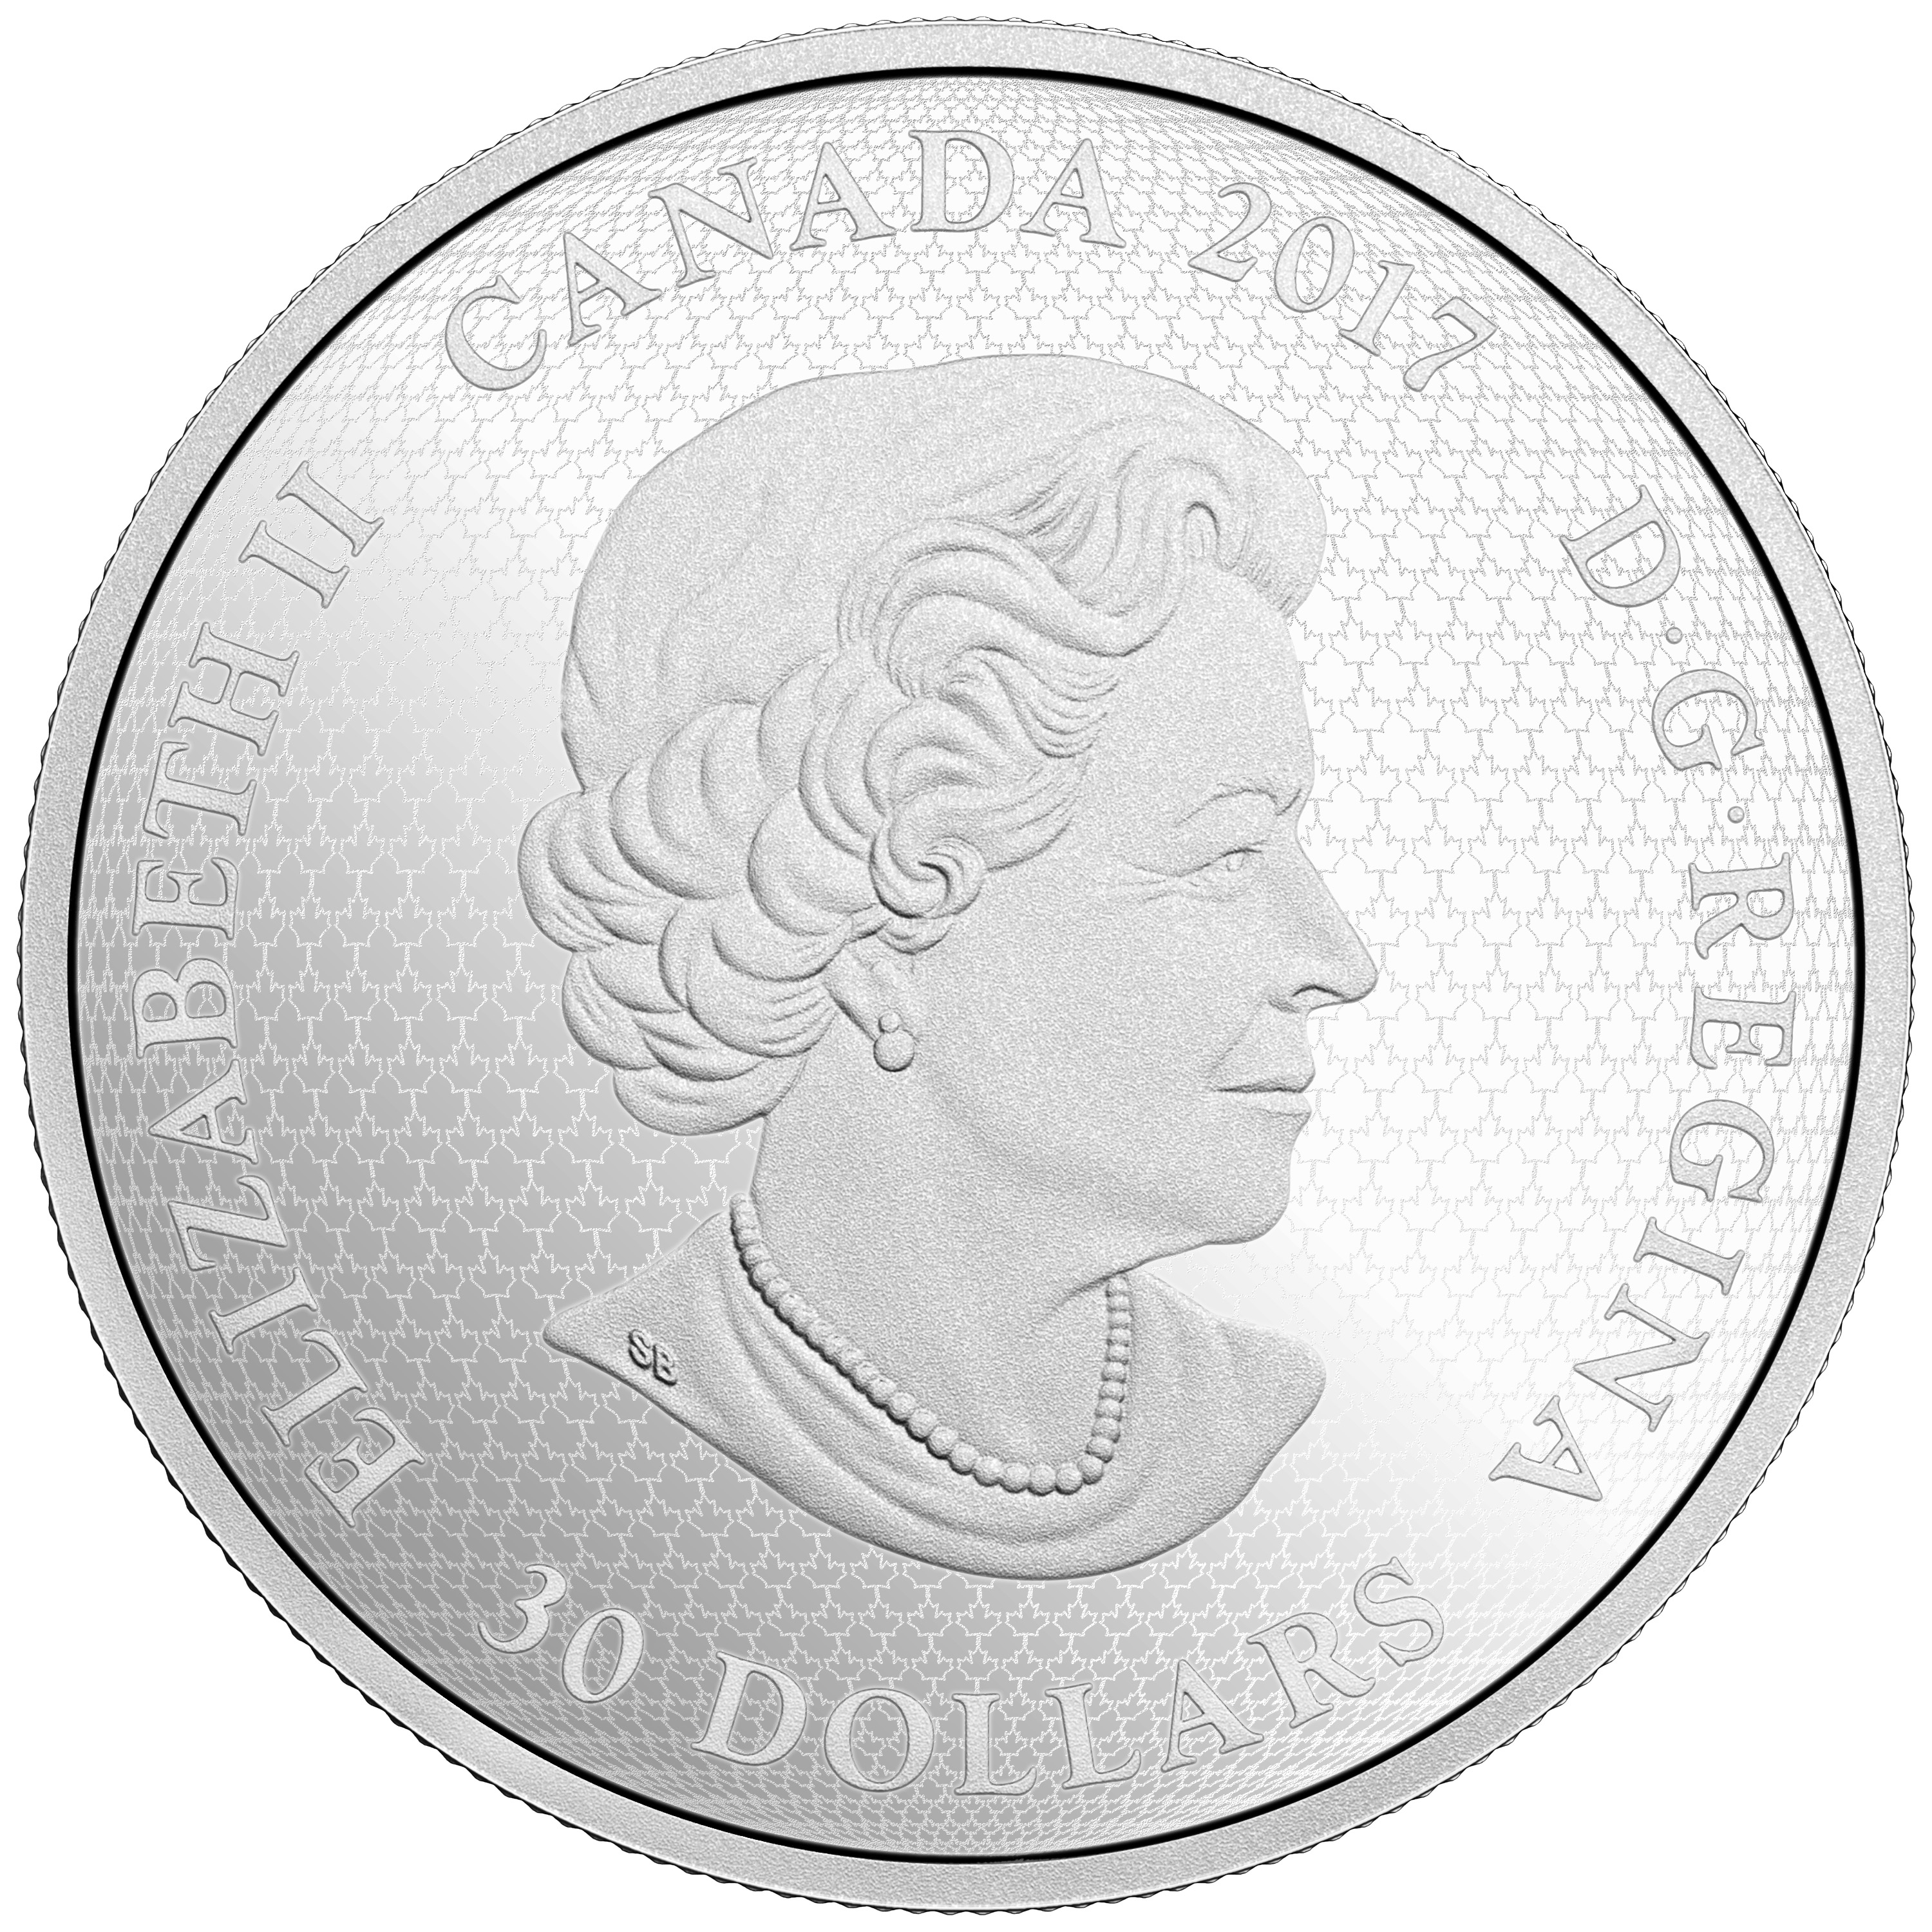 2017 Celebrating Canada Day 150 Parliament Hill $30 Glow-In-The-Dark Silver Coin